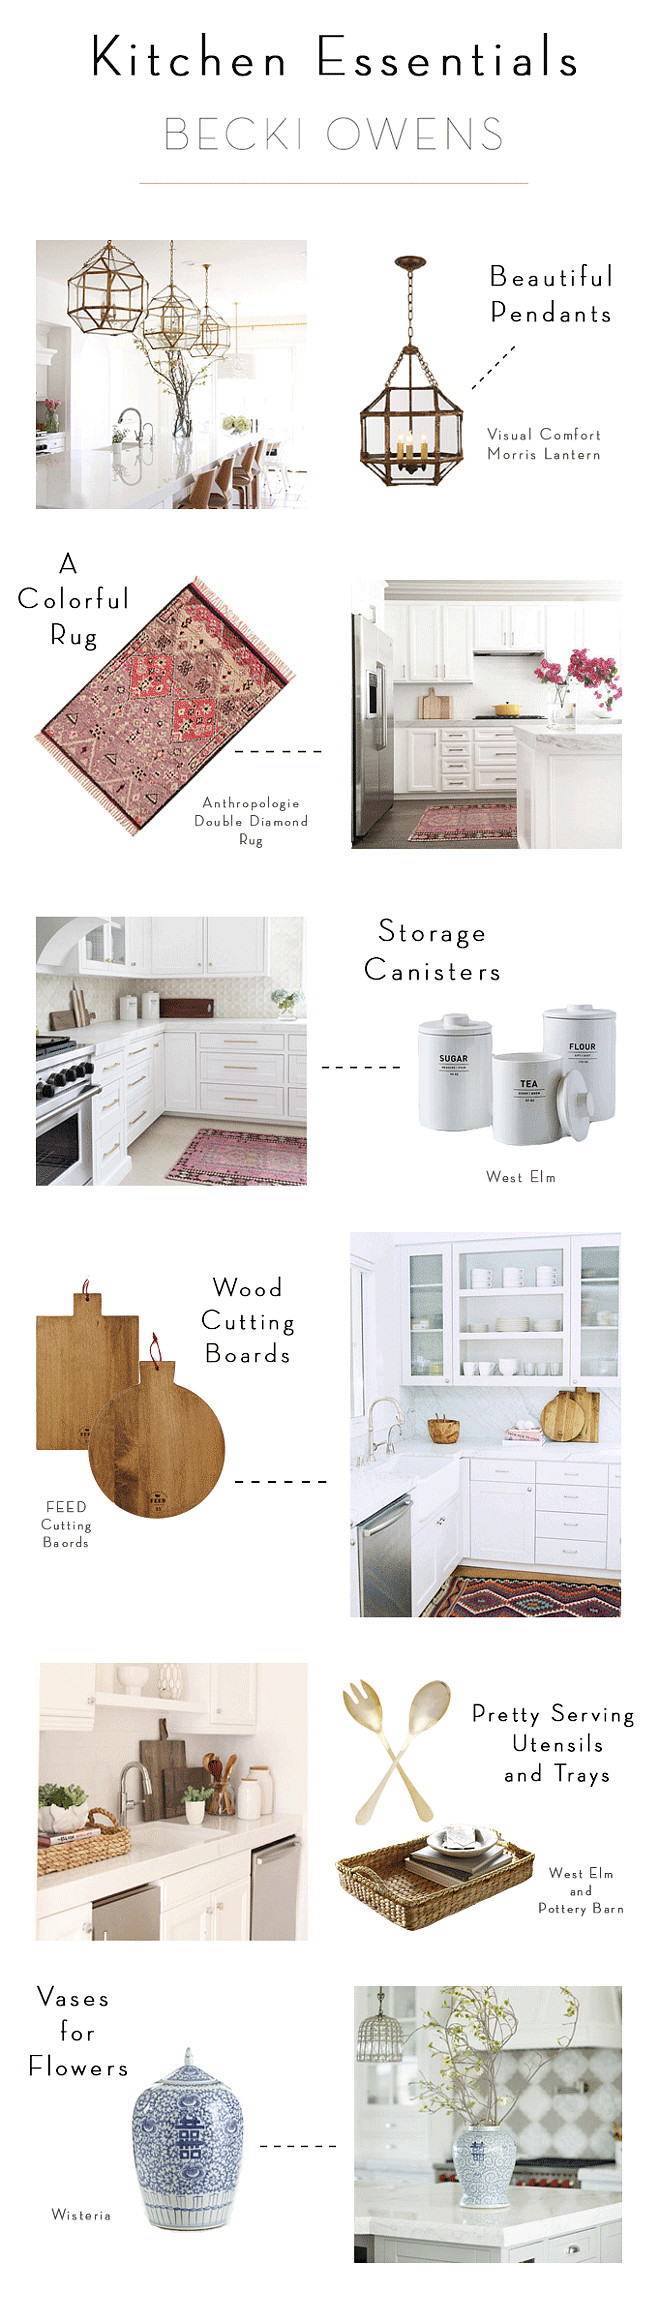 Kitchen Essentials by Becki Owens. Kitchen Guide. Kitchen Tips. #Kitchen #Essentials #Guide #DesignerTips #InteriordesignTips Becki Owens.